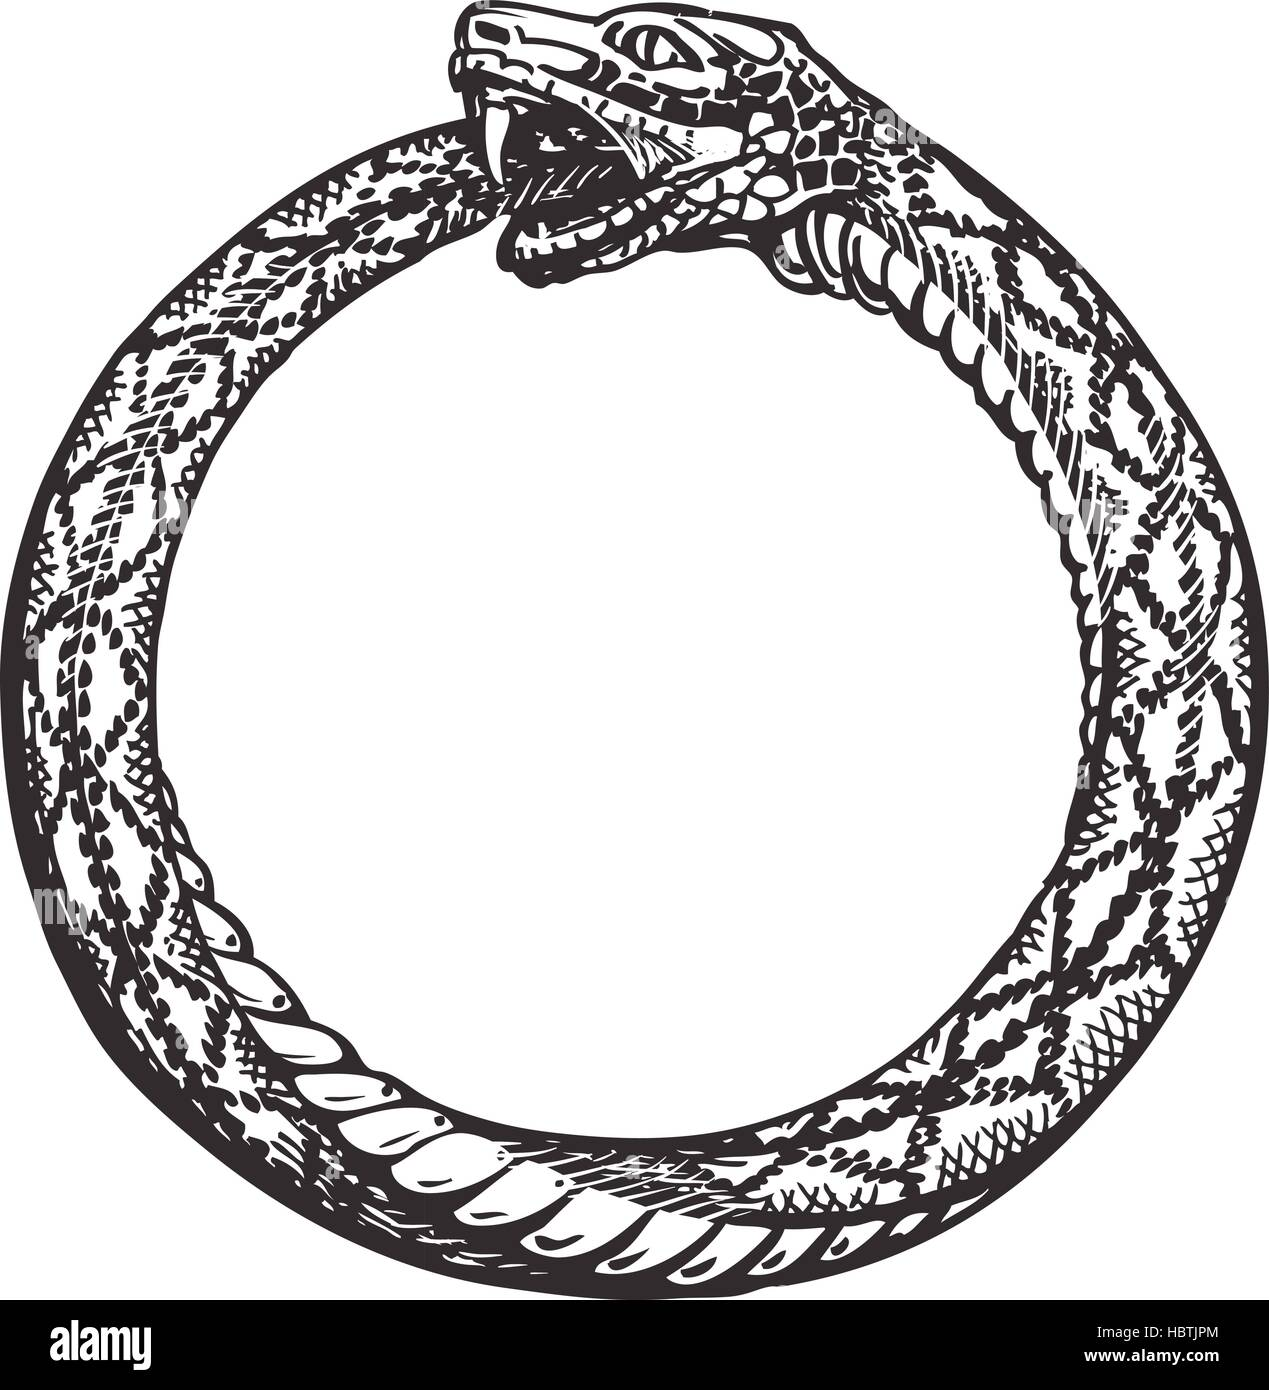 [Imagen: ouroboros-snake-eating-its-own-tail-eter...HBTJPM.jpg]